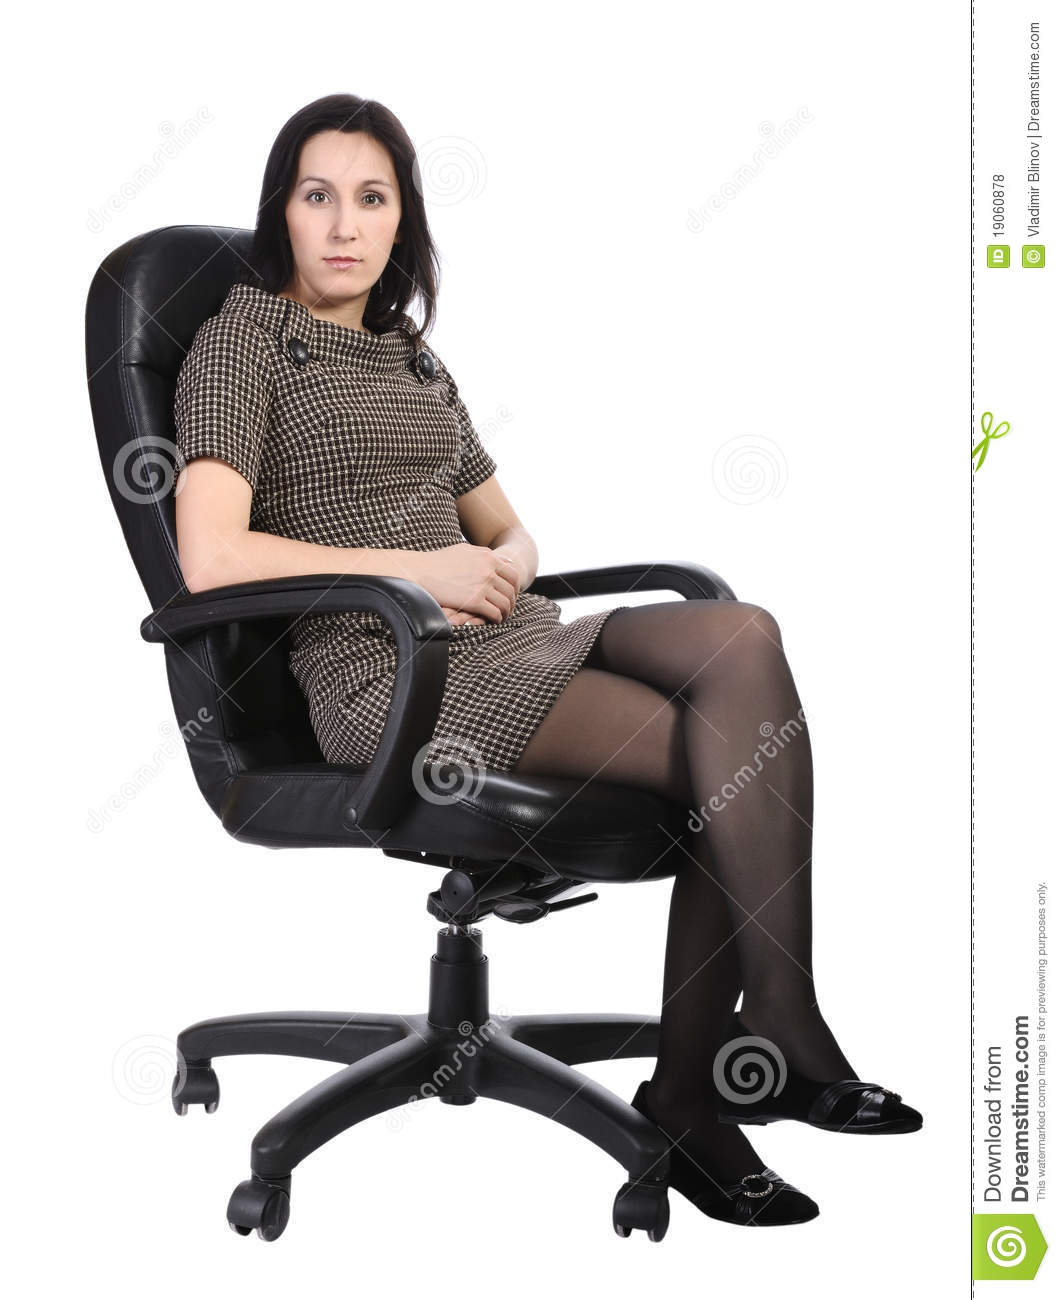 Girls Office Chair Girl In Brown Dress In An Office Chair Isolated Royalty